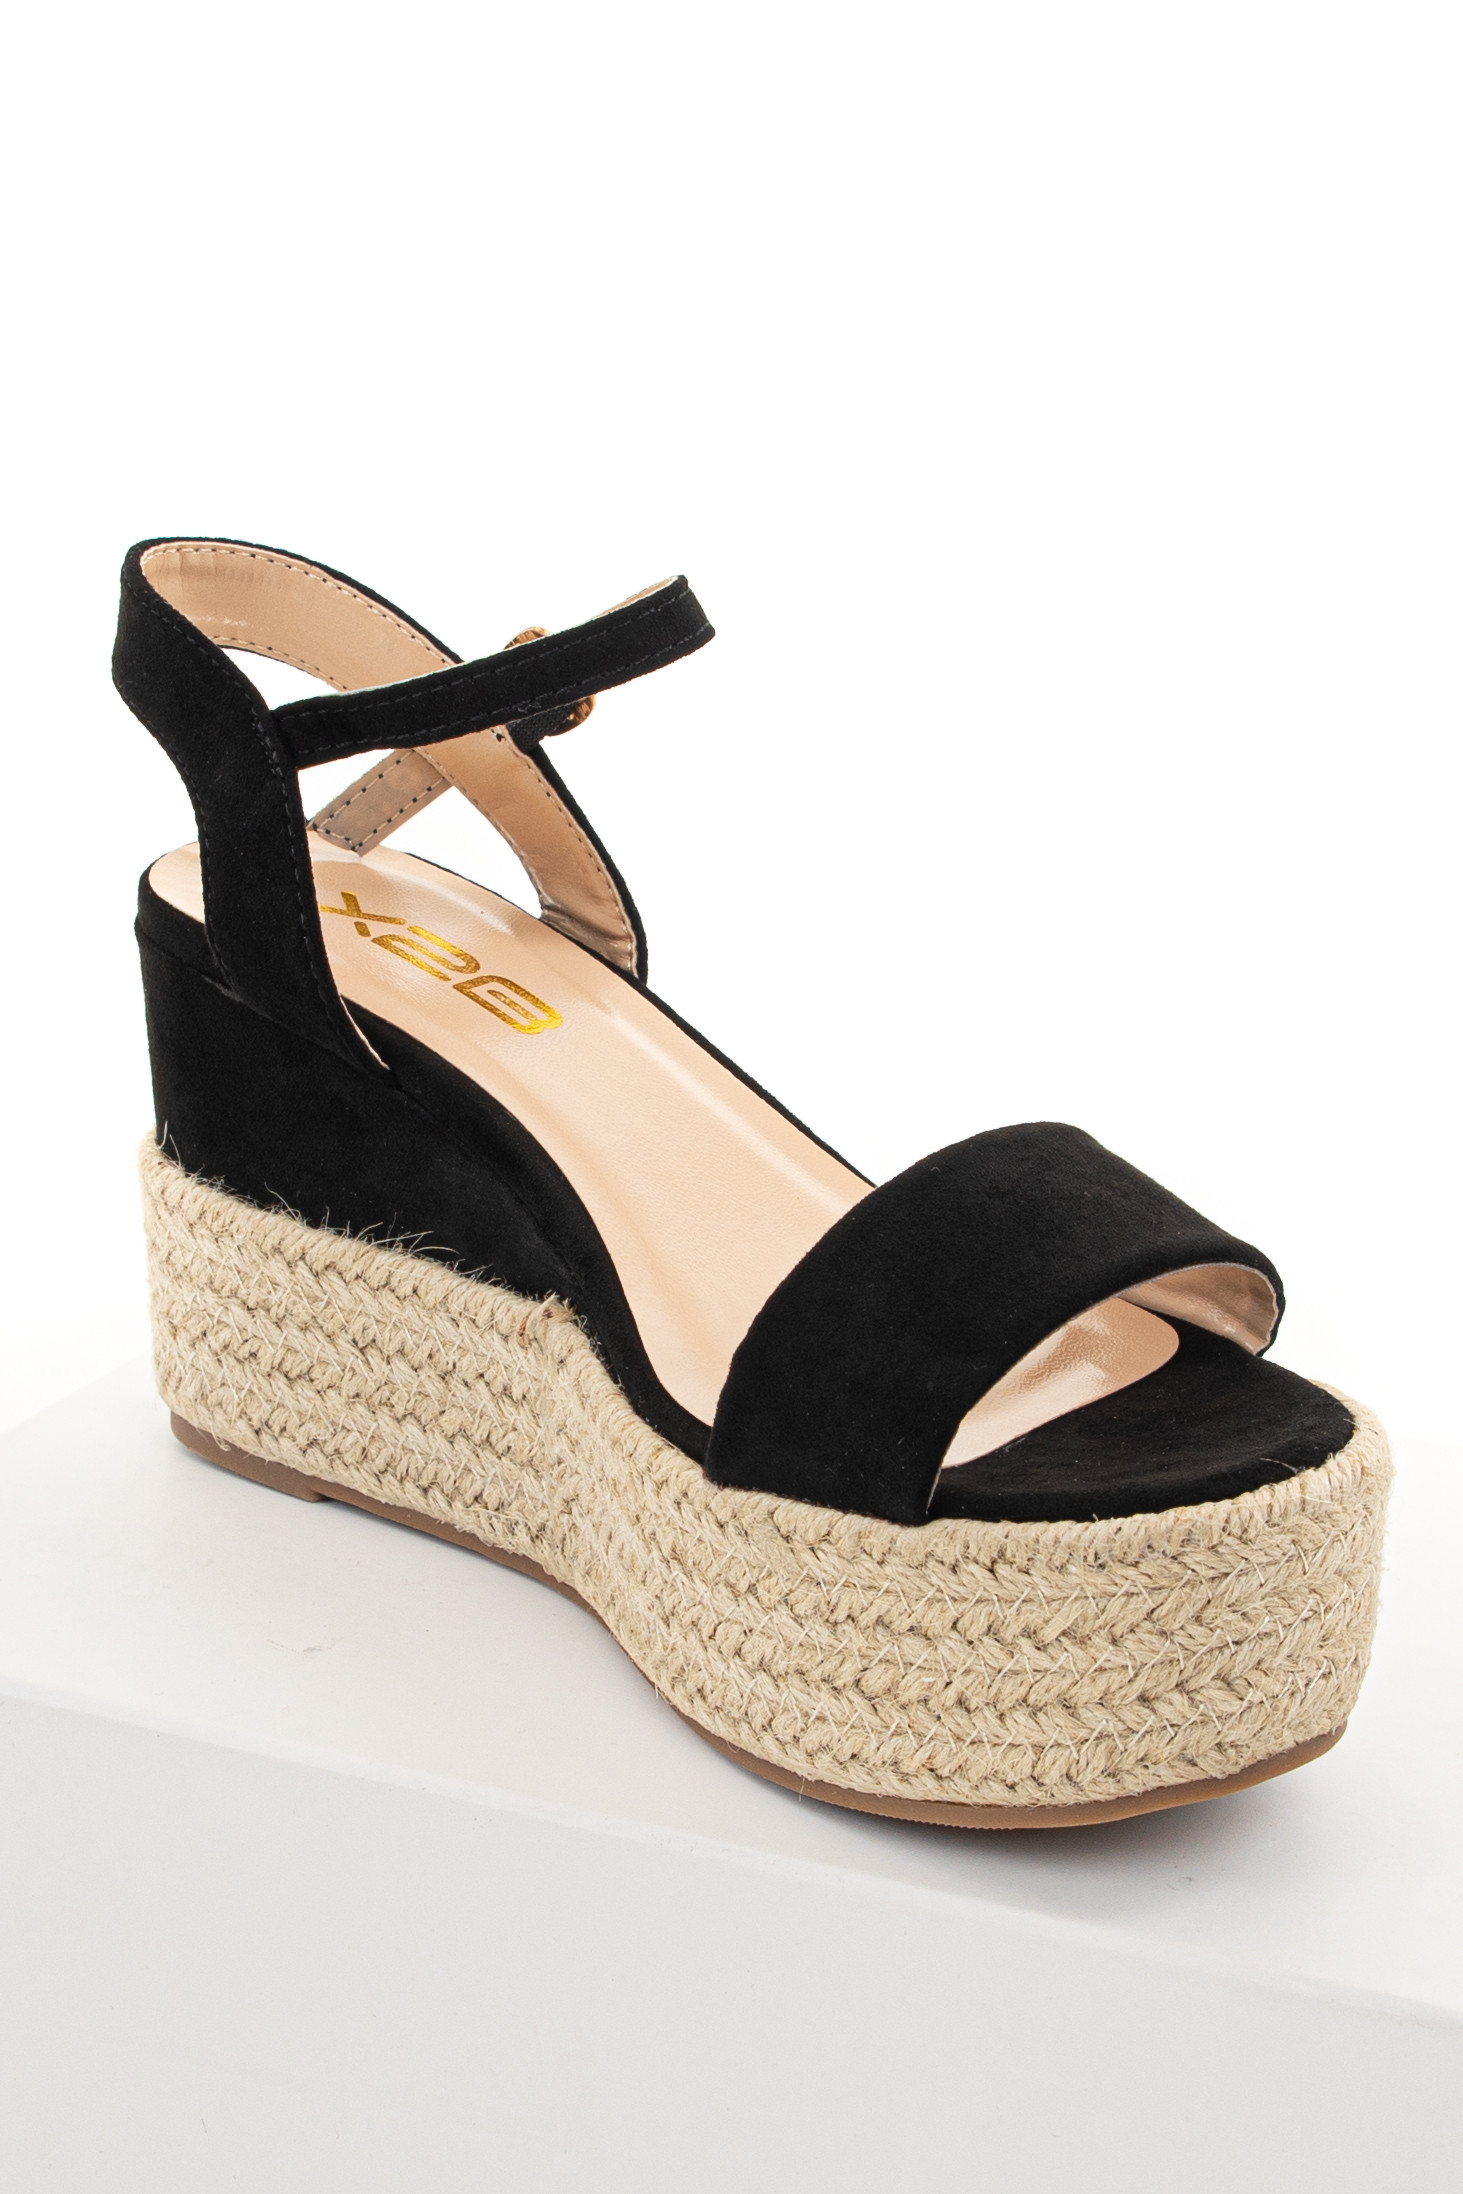 Black Faux Suede Espadrille Sandals with Ankle Strap